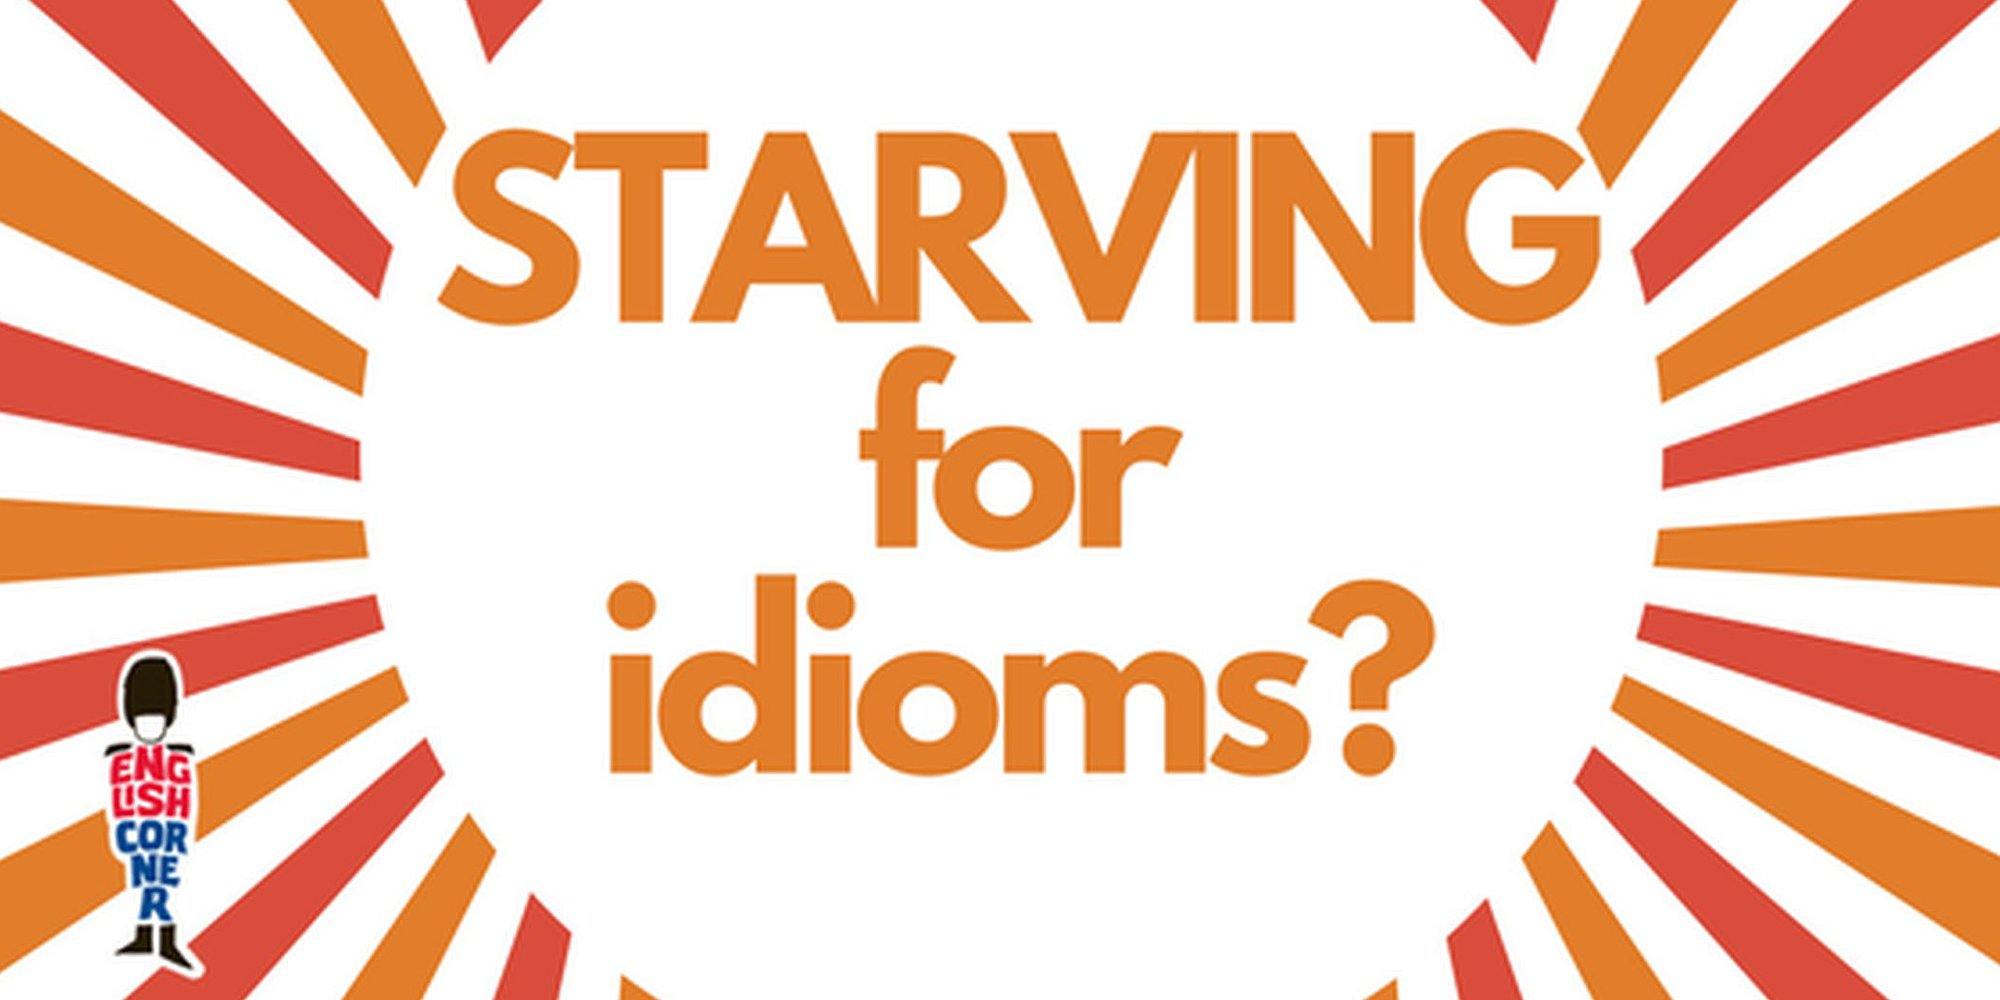 STARVING FOR IDIOMS?